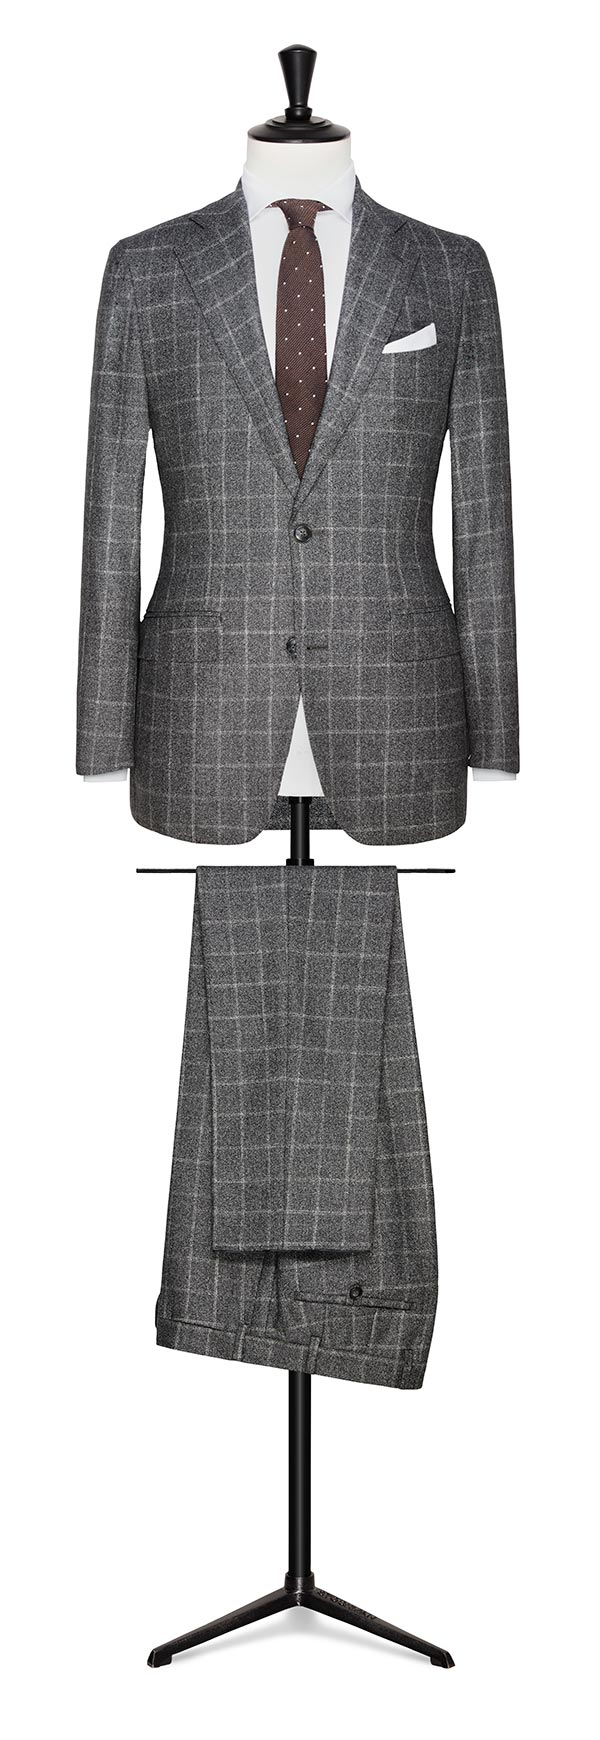 Maatpak Loro Piana - Dream Tweed 9